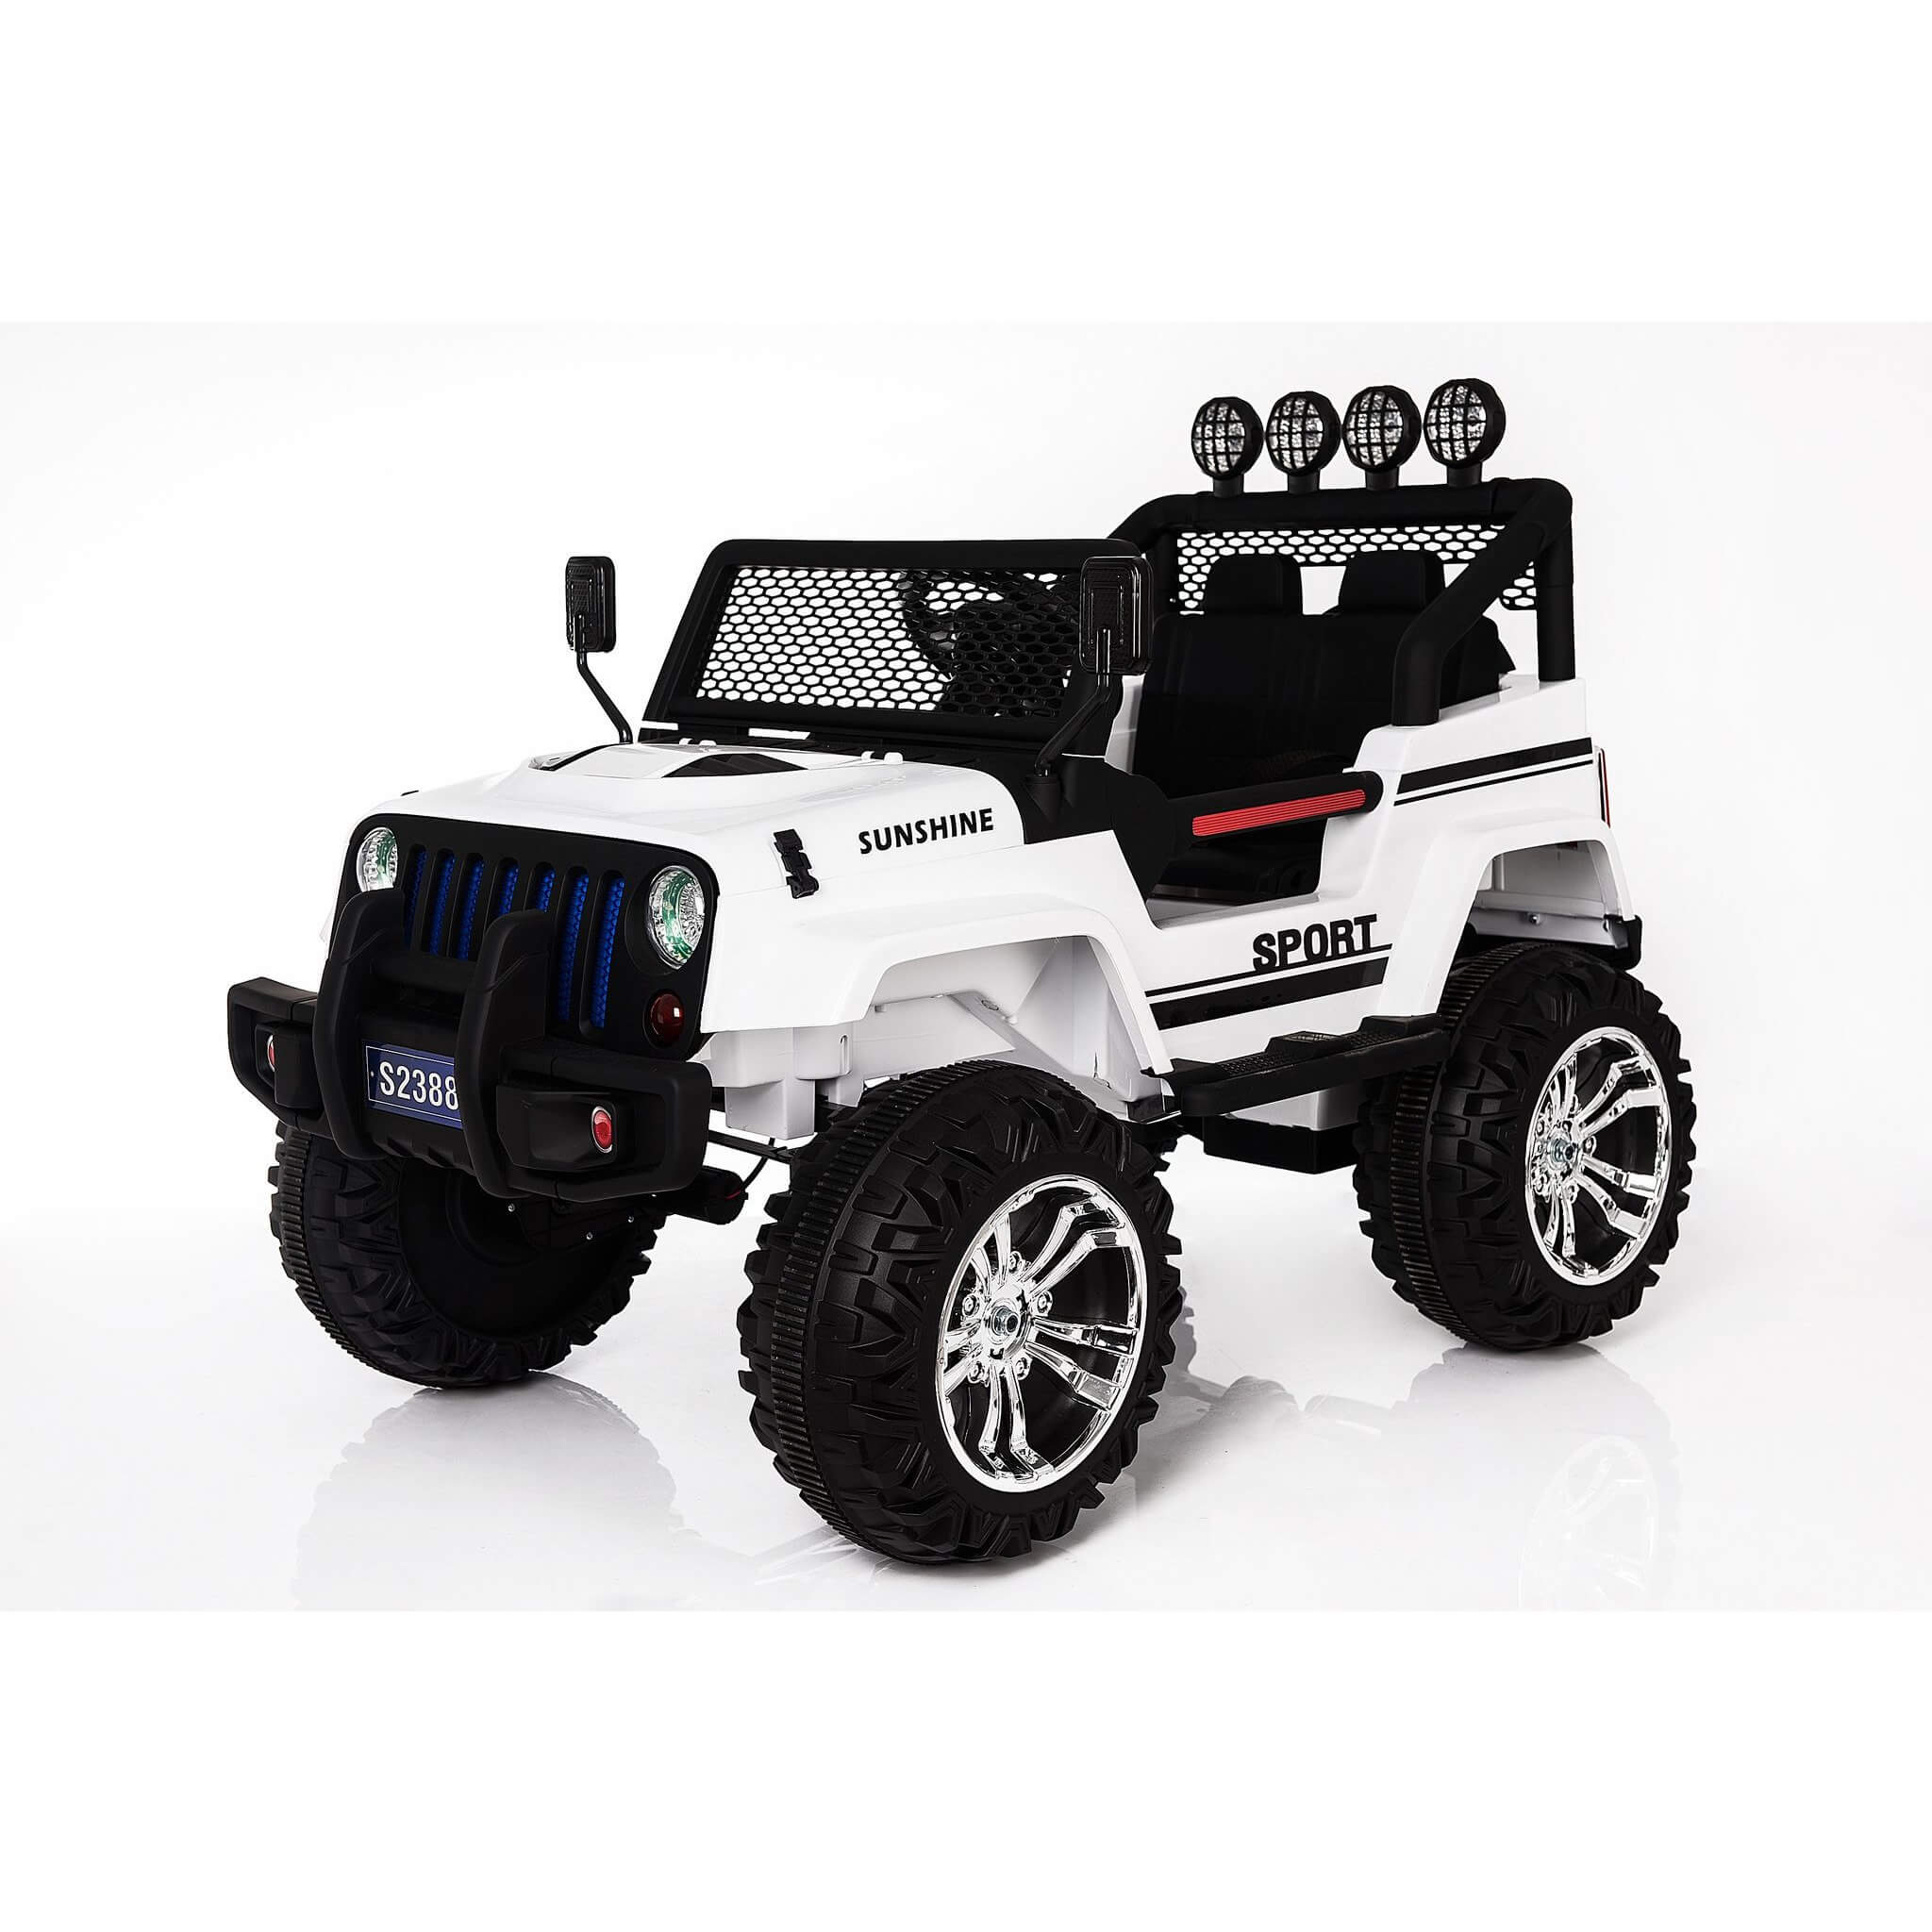 RAF XTREME FUN 12V RIDE ON SUV JEEP WITH OPEN DOORS FOR KIDS - rafplay